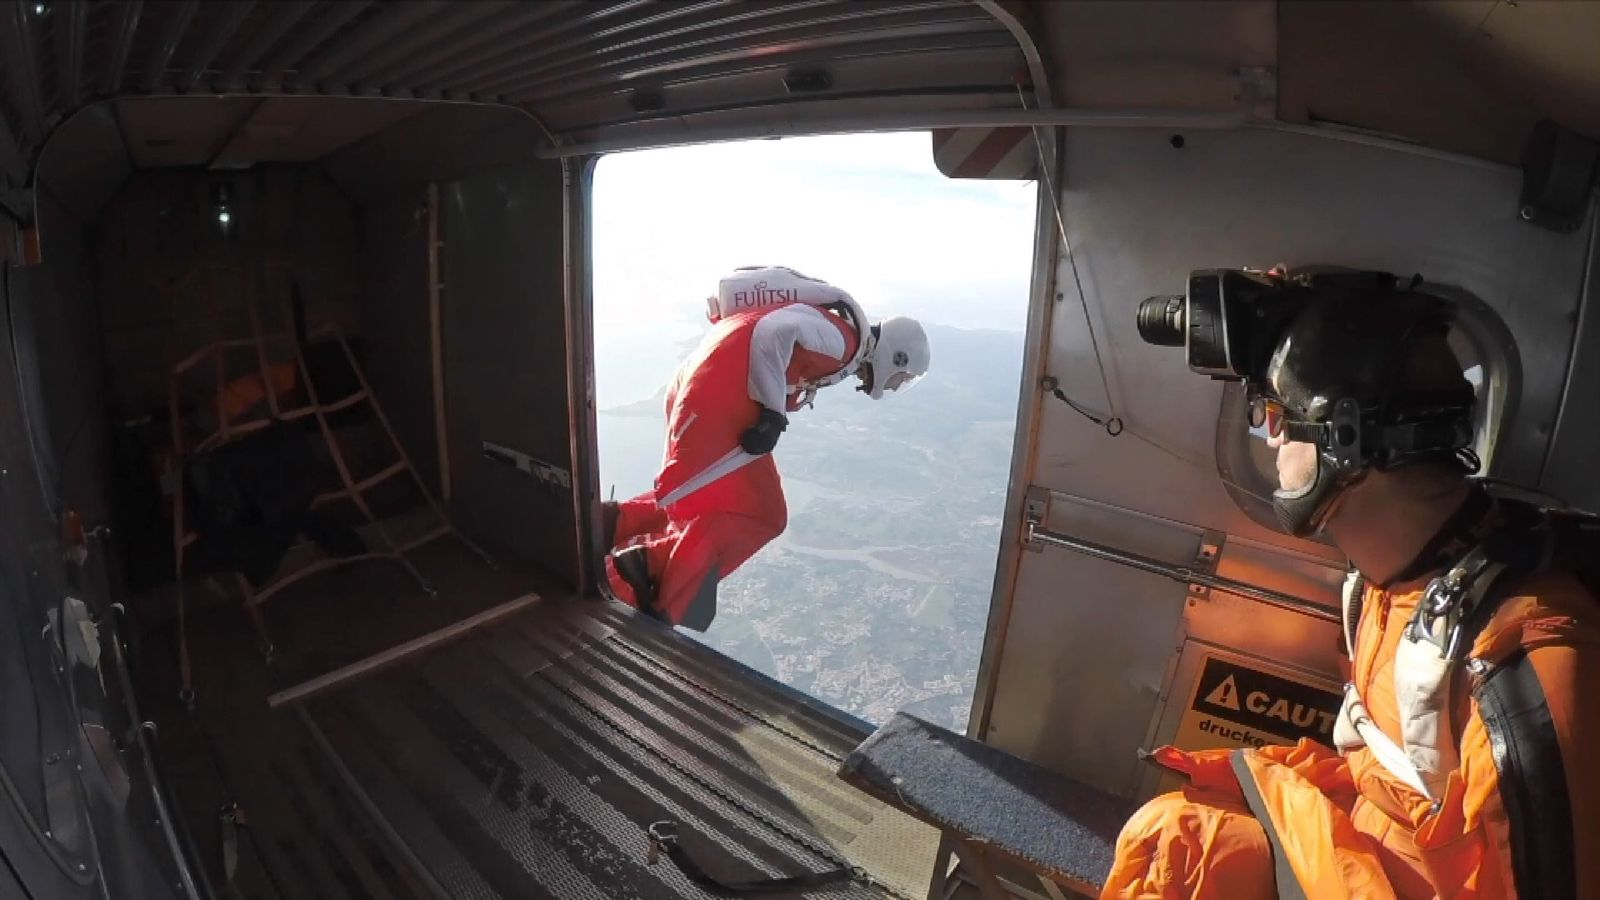 Fraser Corsan will freefall from above 40,000ft - higher than Everest